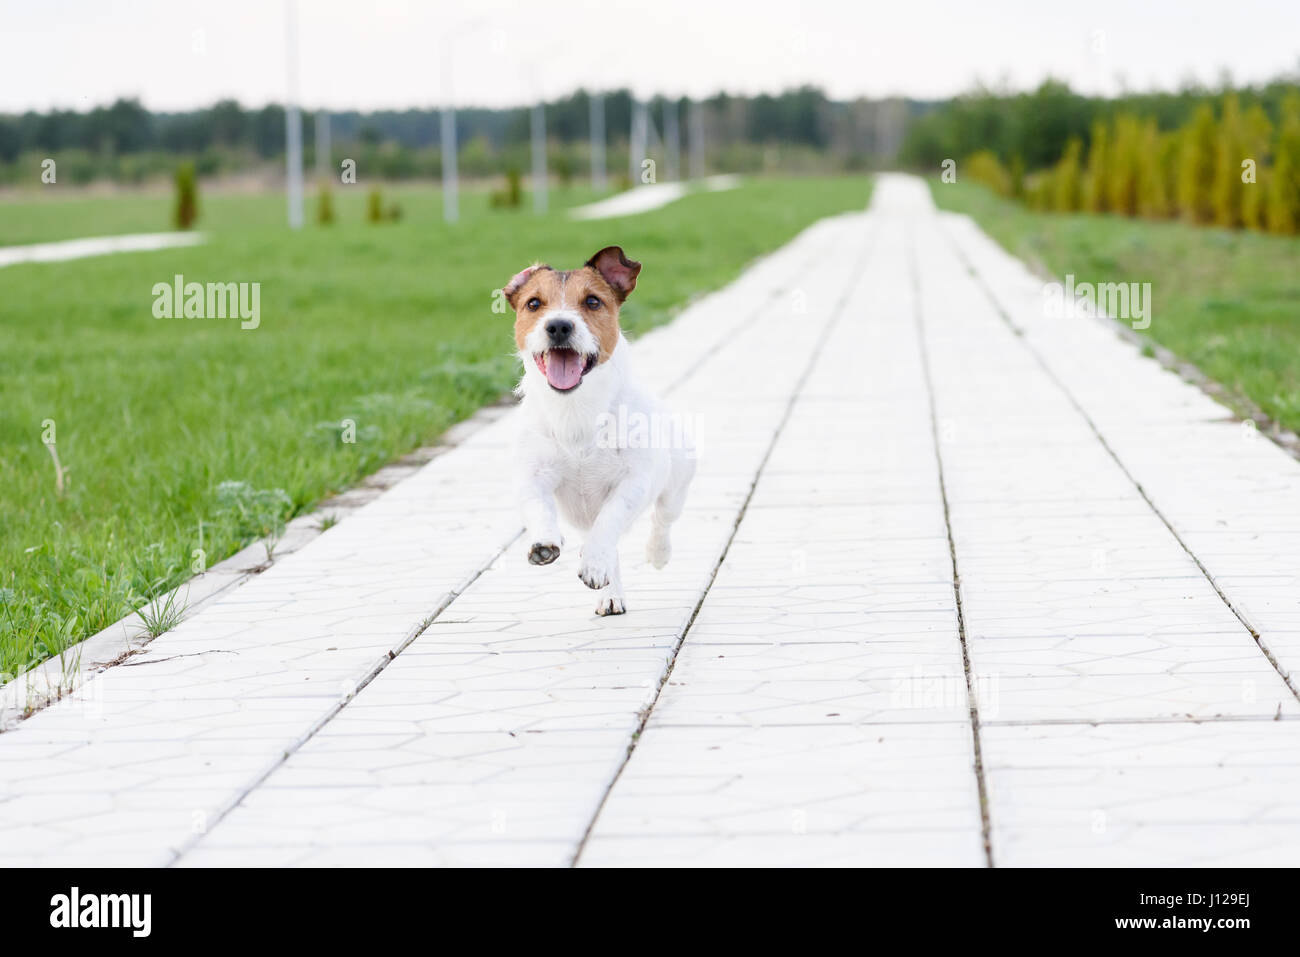 Dog running on camera by tiled road going to vista - Stock Image